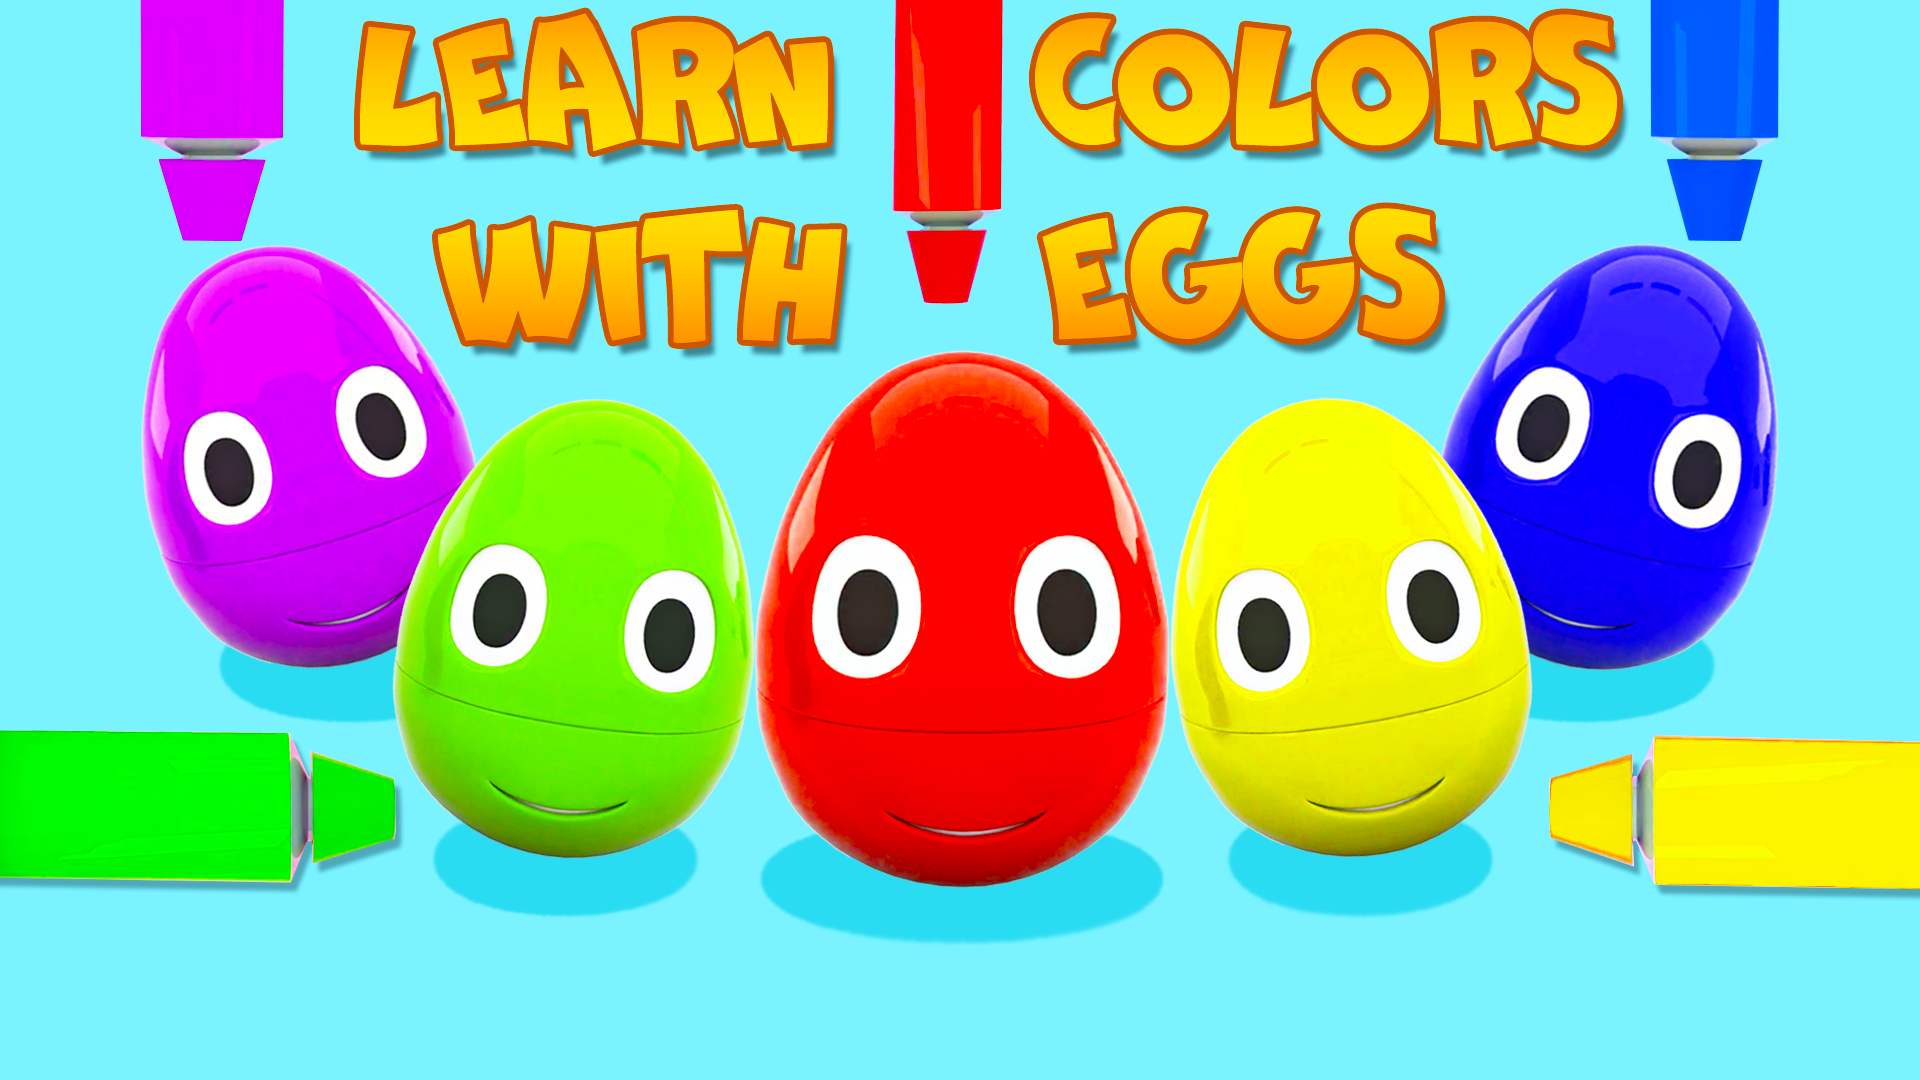 Learn Colors with Eggs